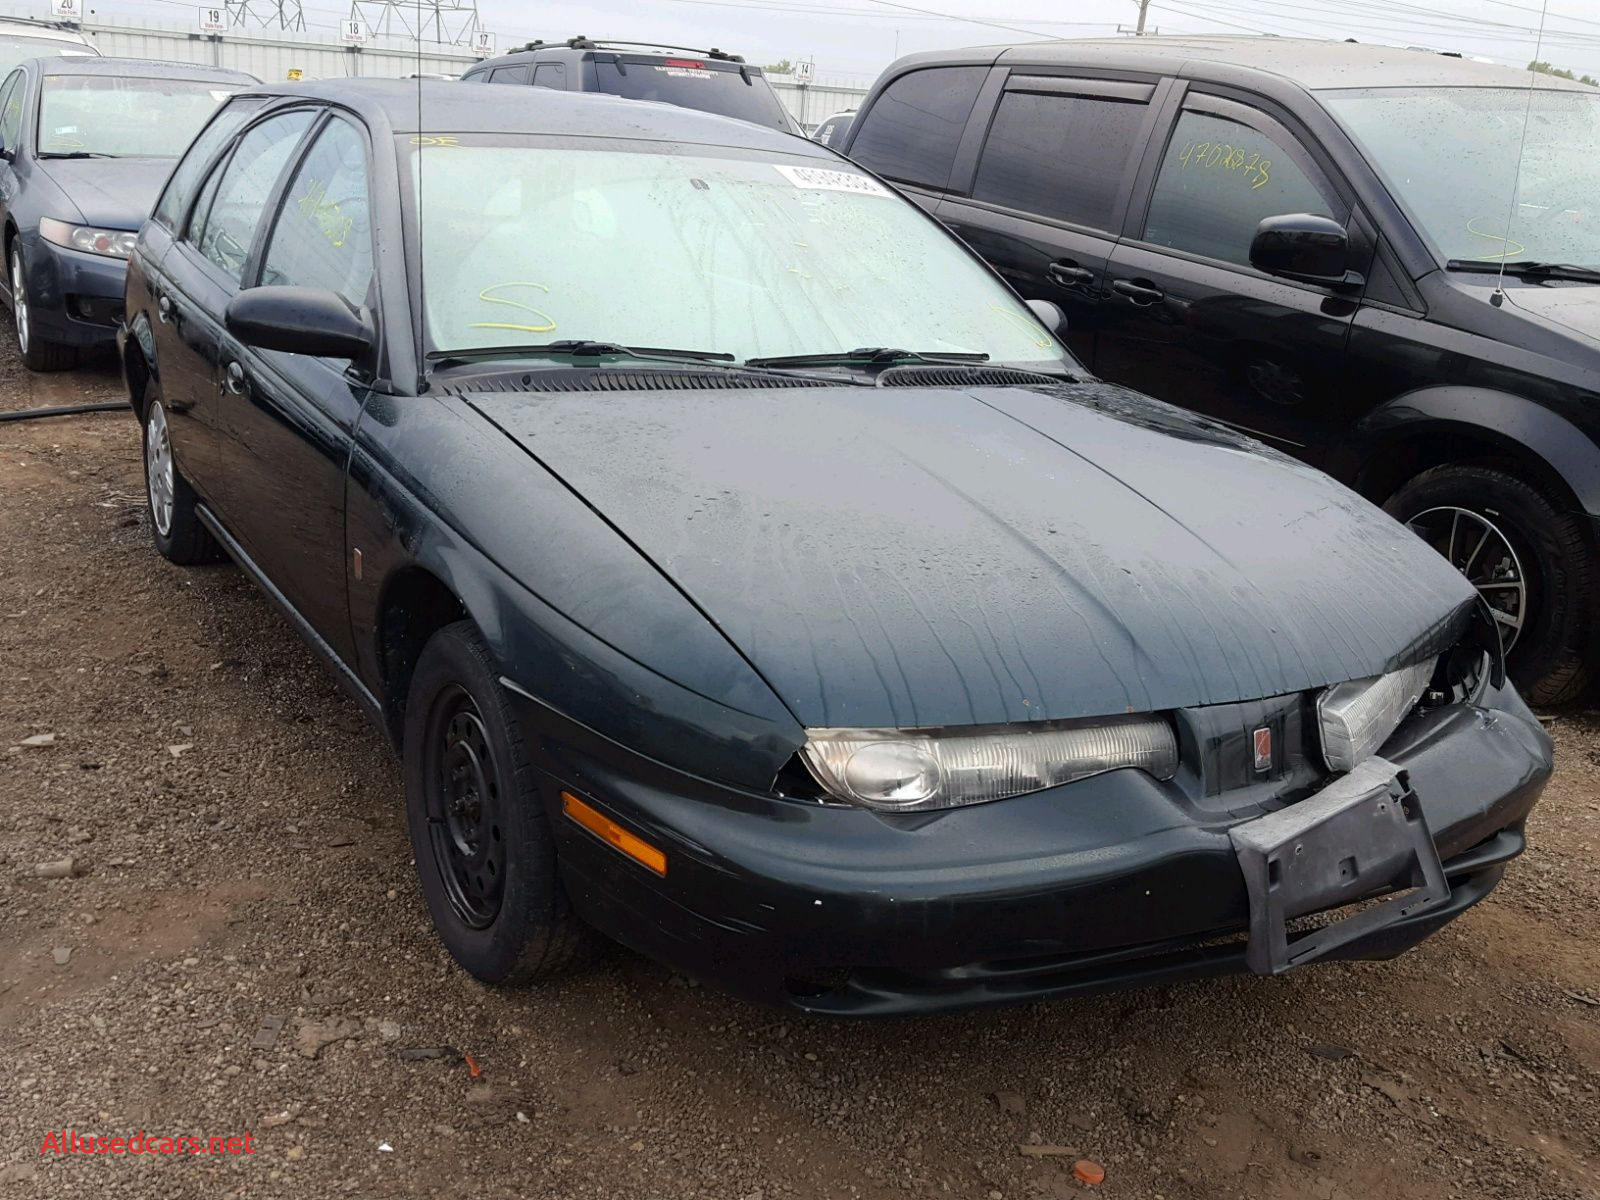 Awesome Repossessed Cars for Sale Near Me Luxury Damaged Cars for Sale Near Me Awesome Damaged Saturn S